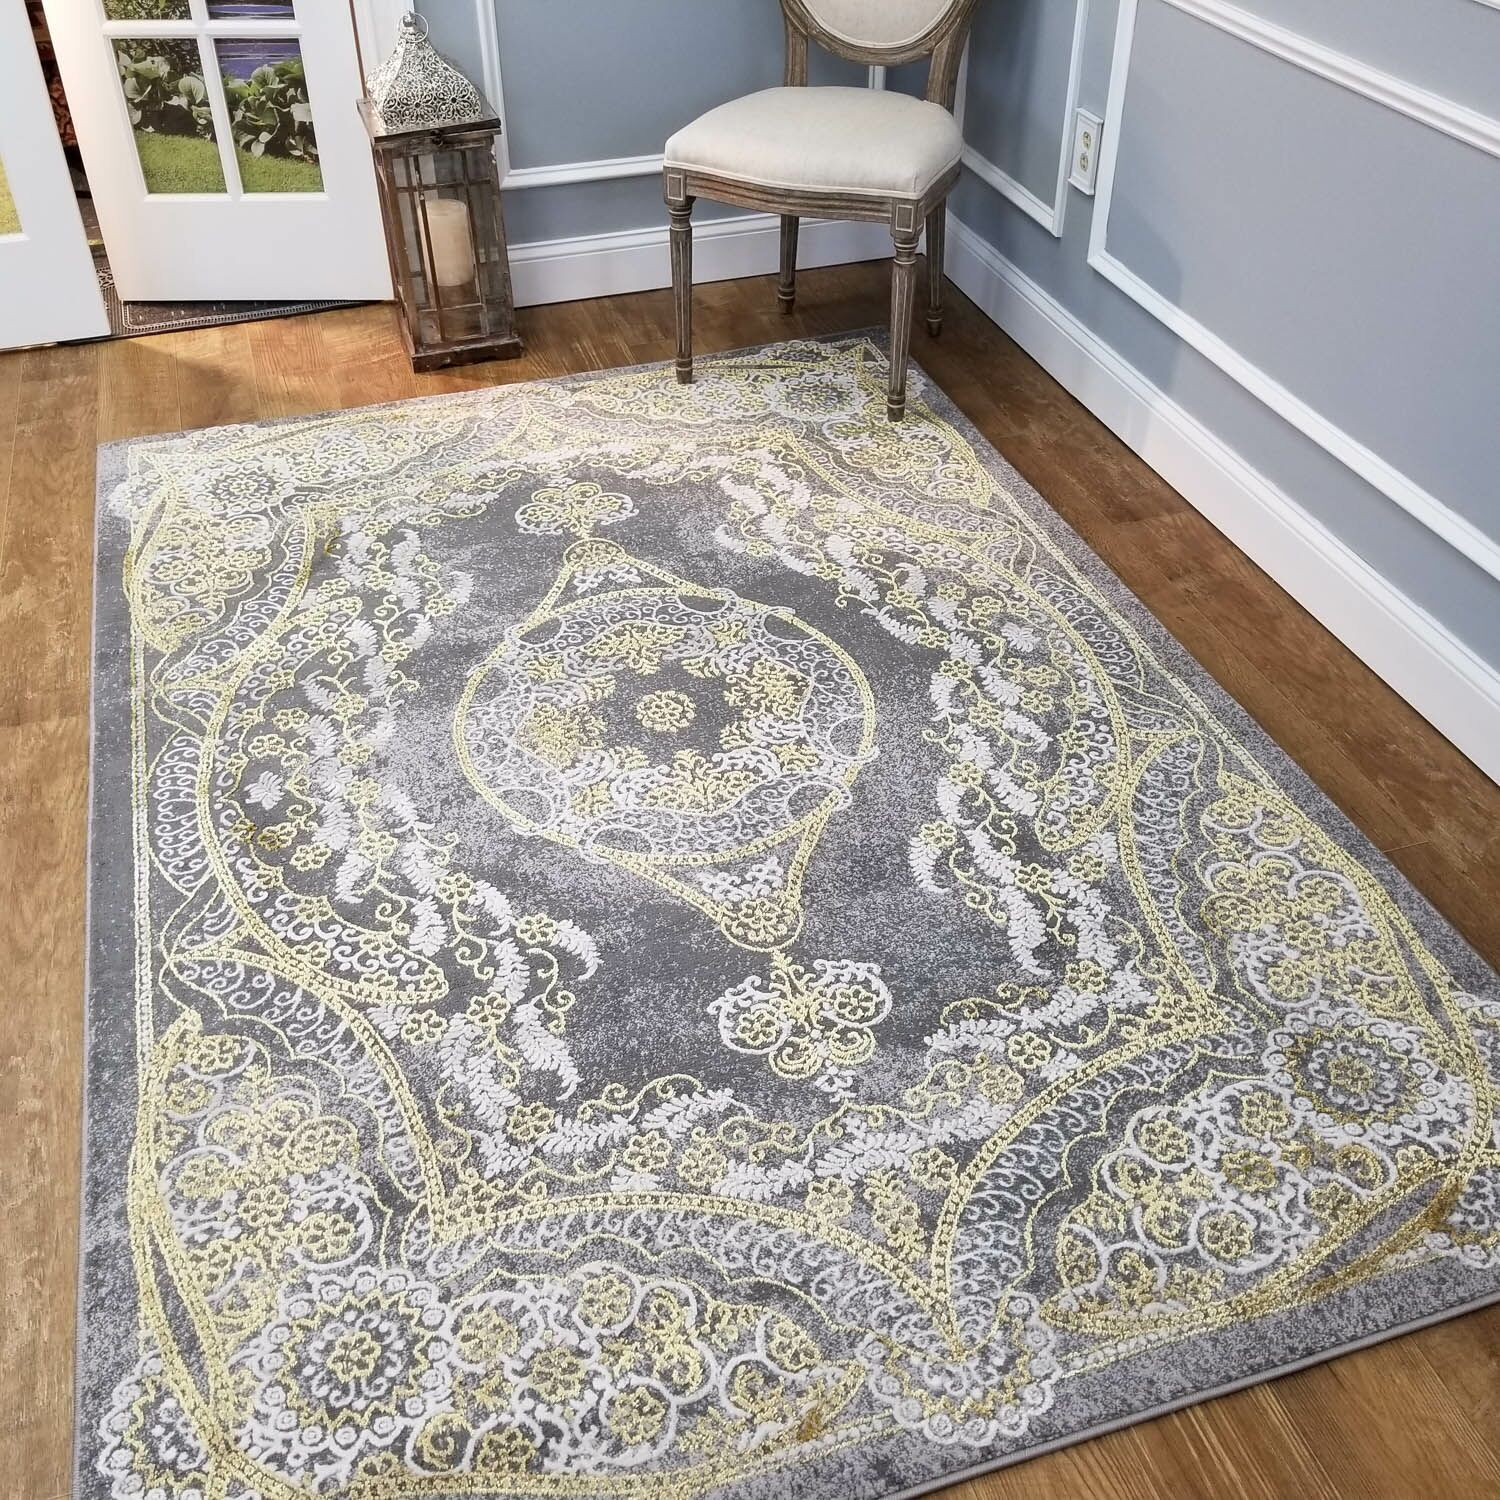 Wintergreen Silky Kingdom Gray/White Area Rug Rug Size: Rectangle 8'2